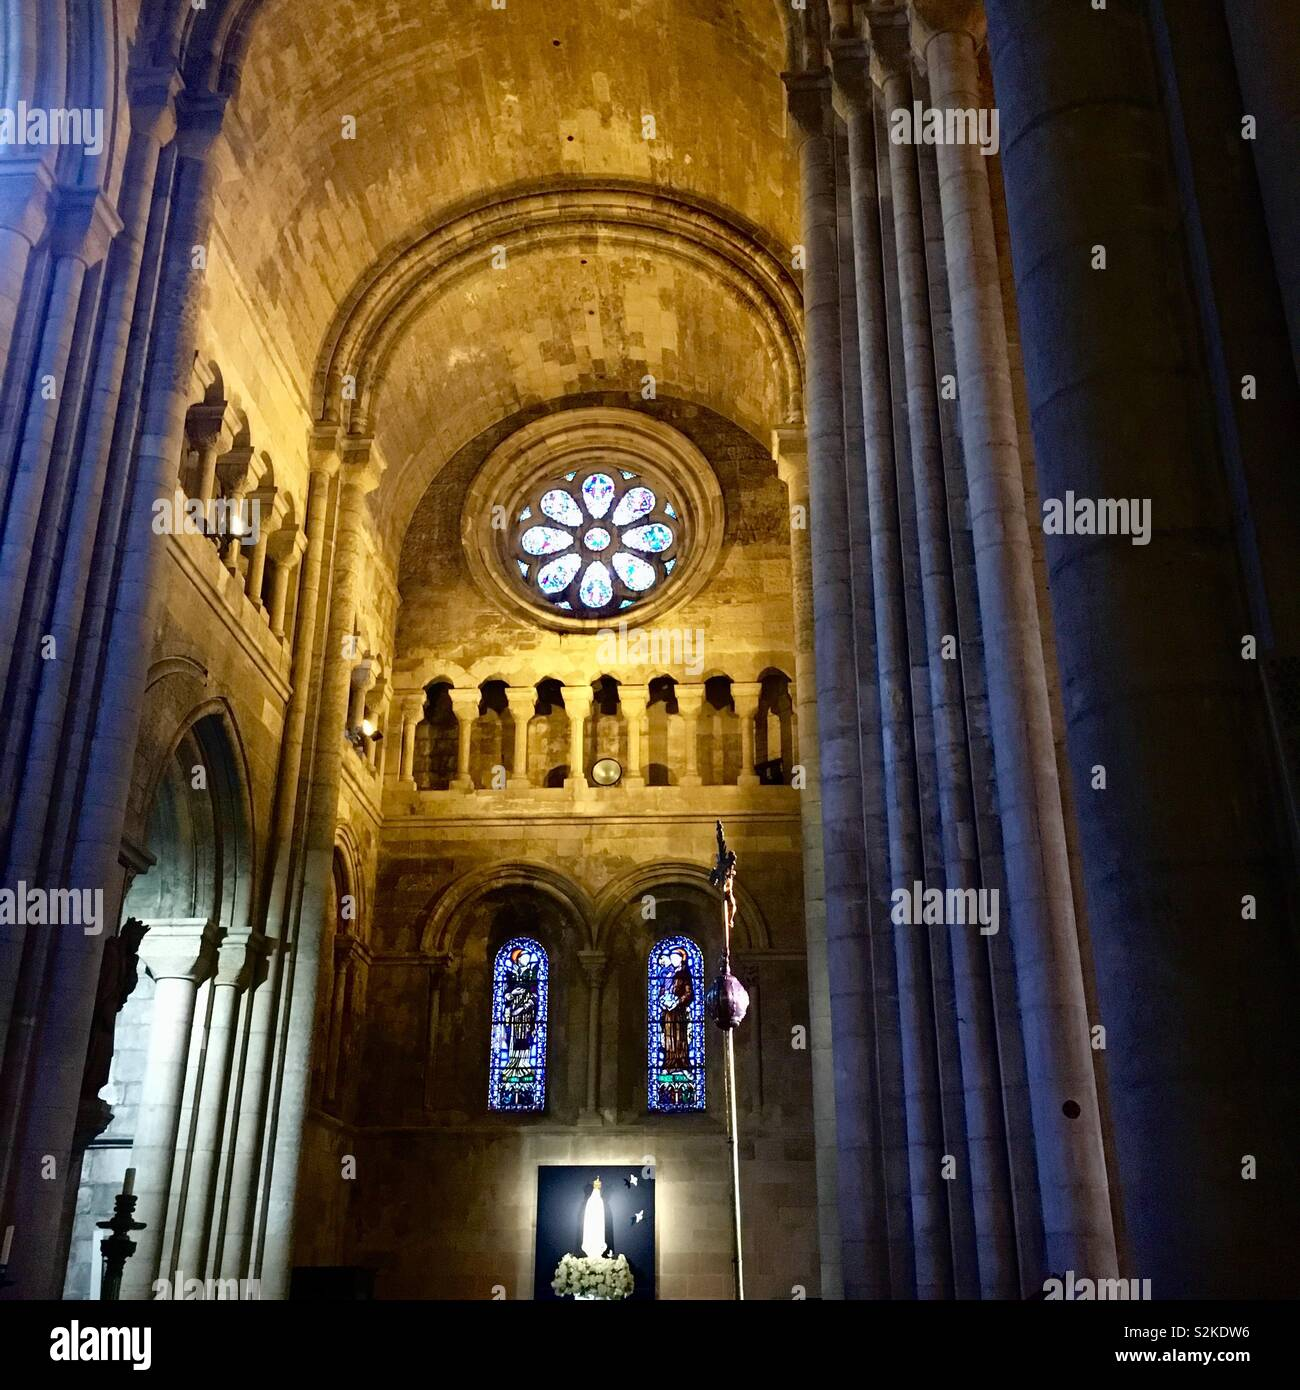 Lisbon cathedral - the cross and stain glass windows against the high ceiling Stock Photo